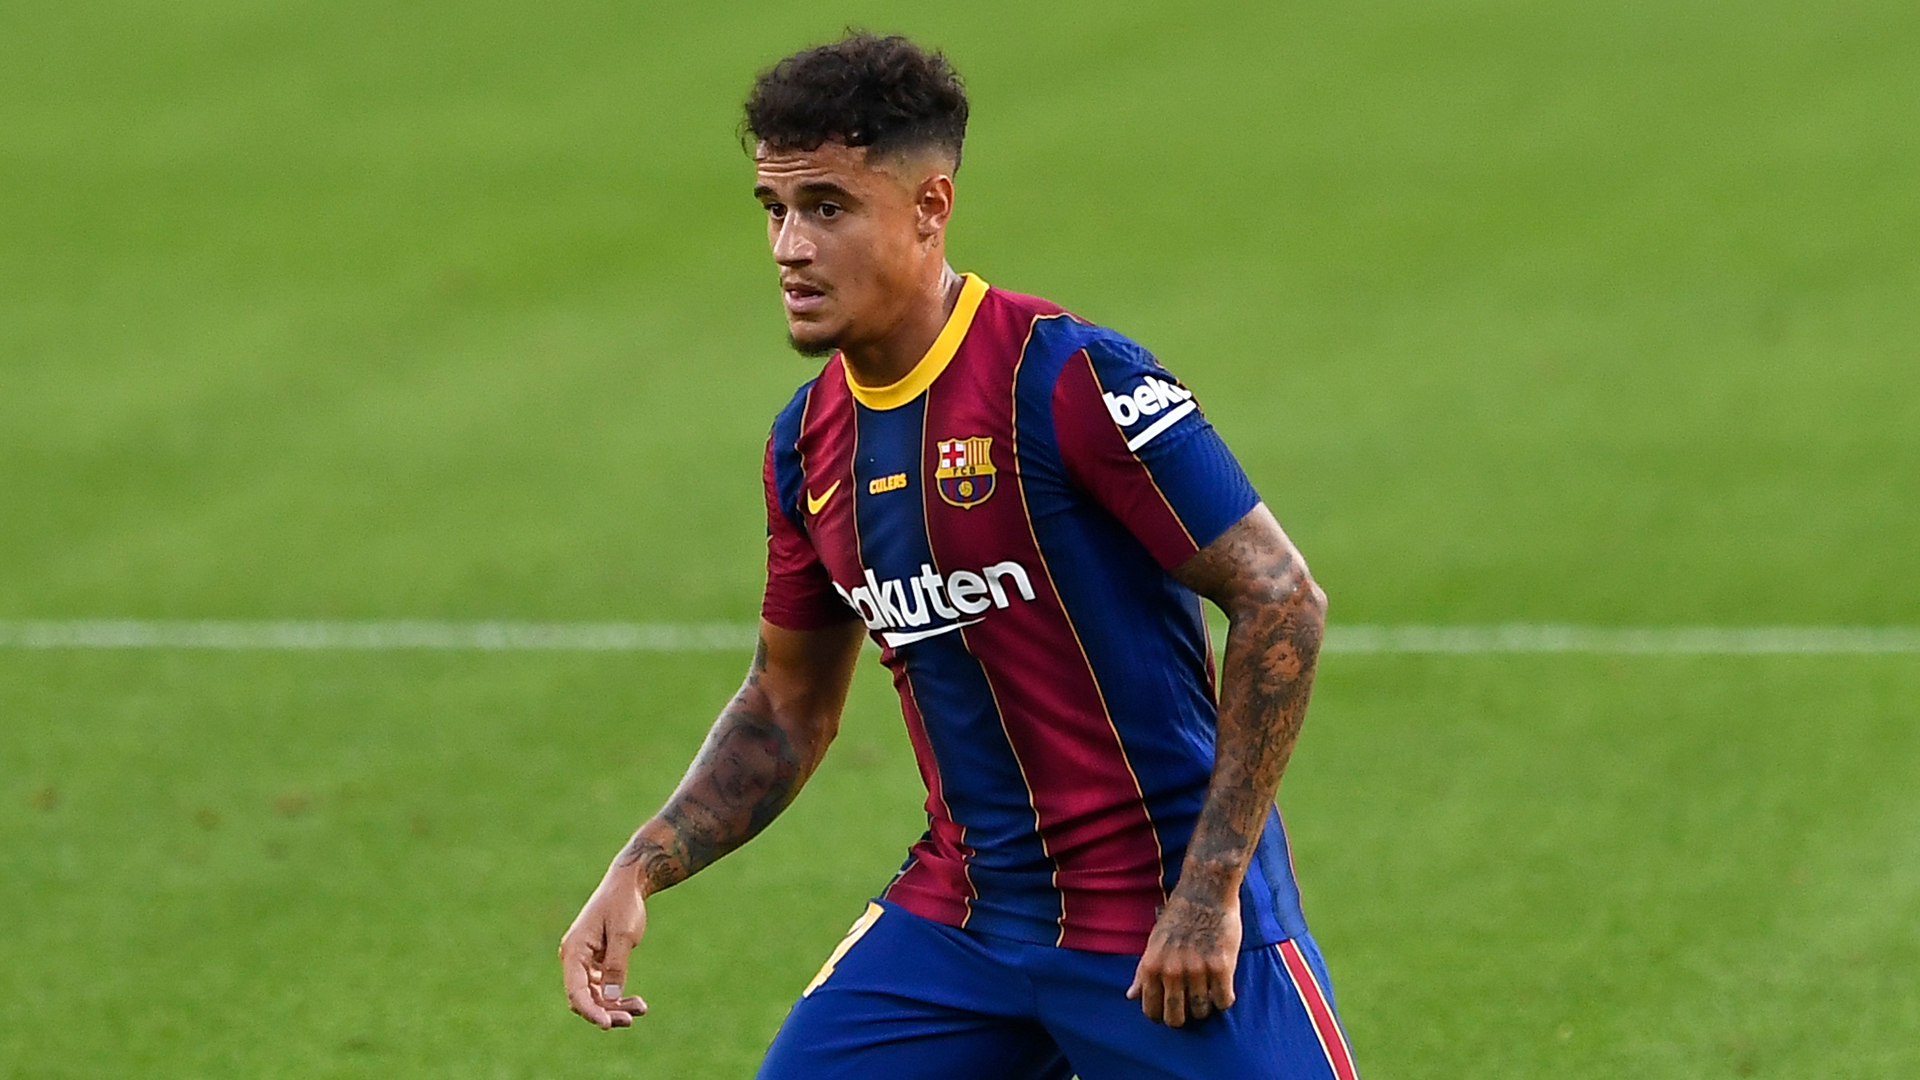 Video: Coutinho determined to succeed upon Barca return